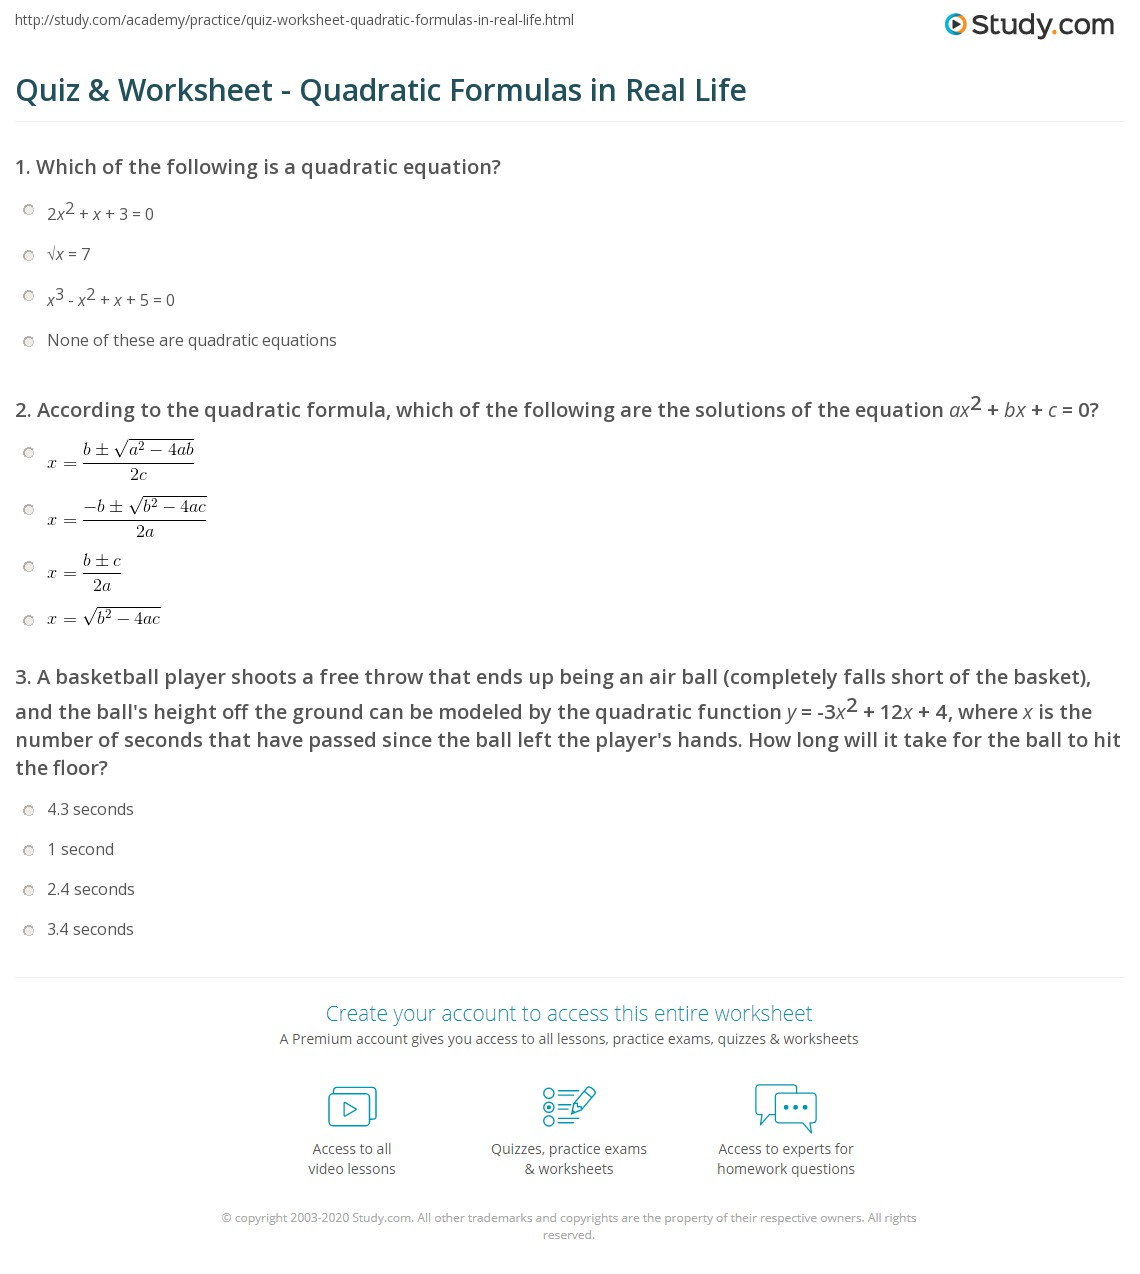 Quadratic Formula Quiz Worksheet